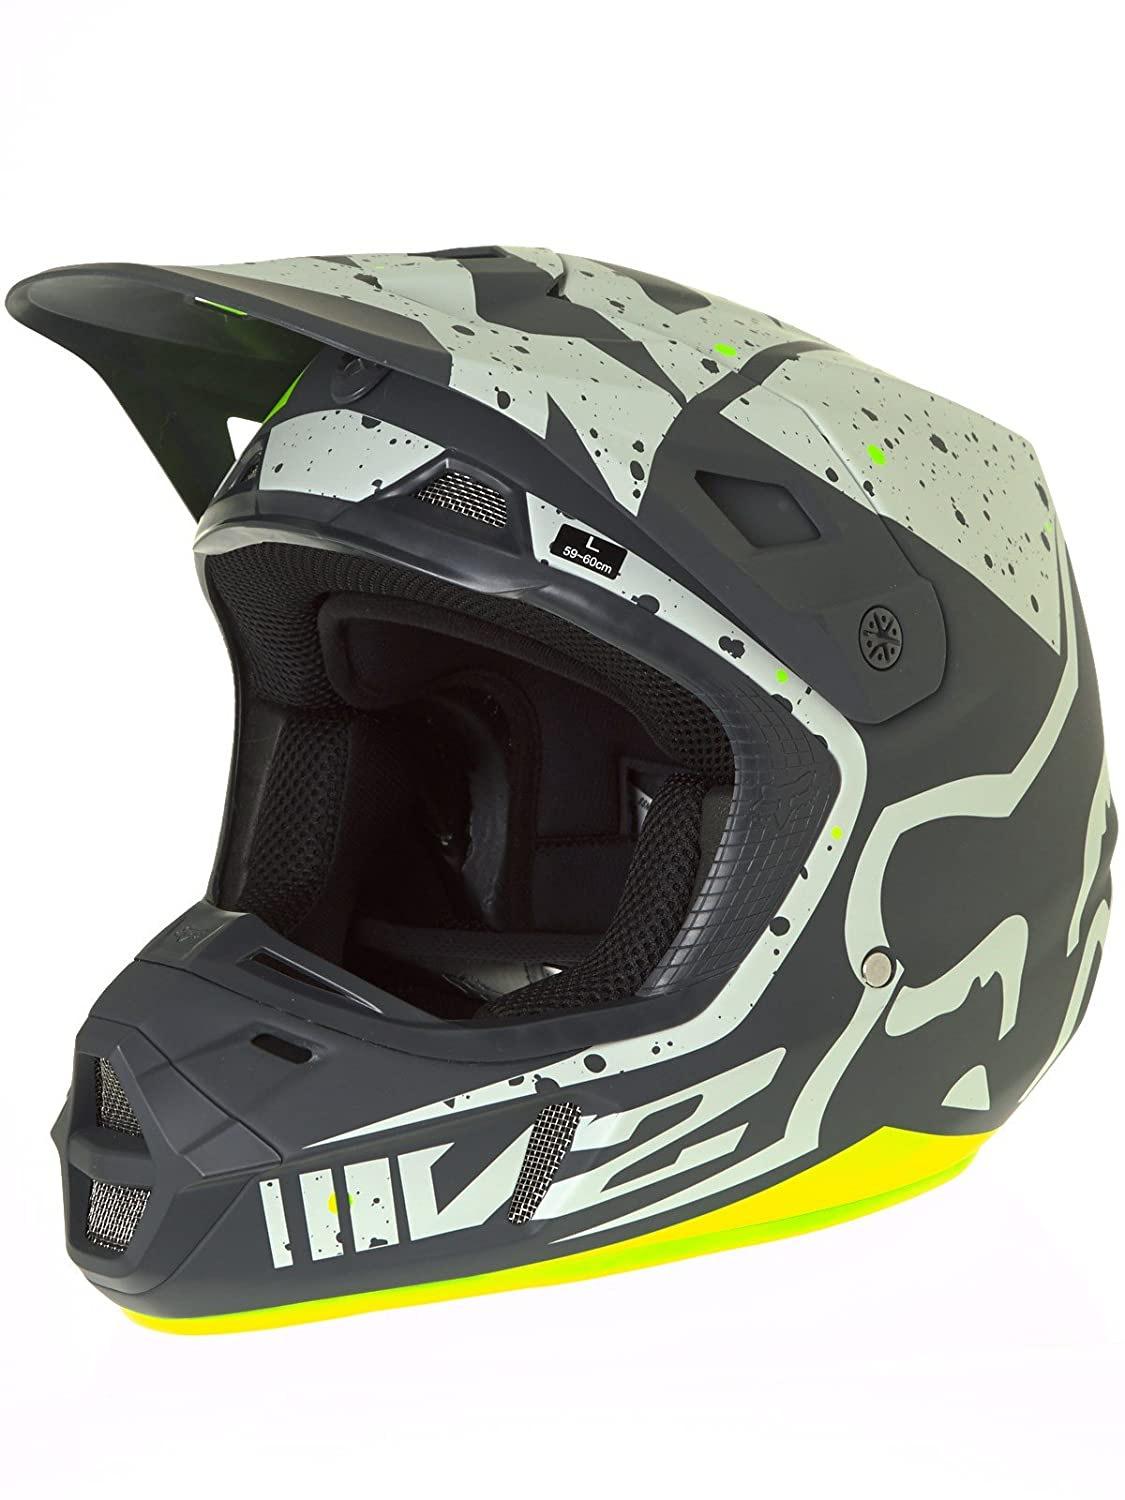 Casco Mx Fox 2017 V2 Nirv Gris-Amarillo (M , Gris): Fox: Amazon.es: Deportes y aire libre